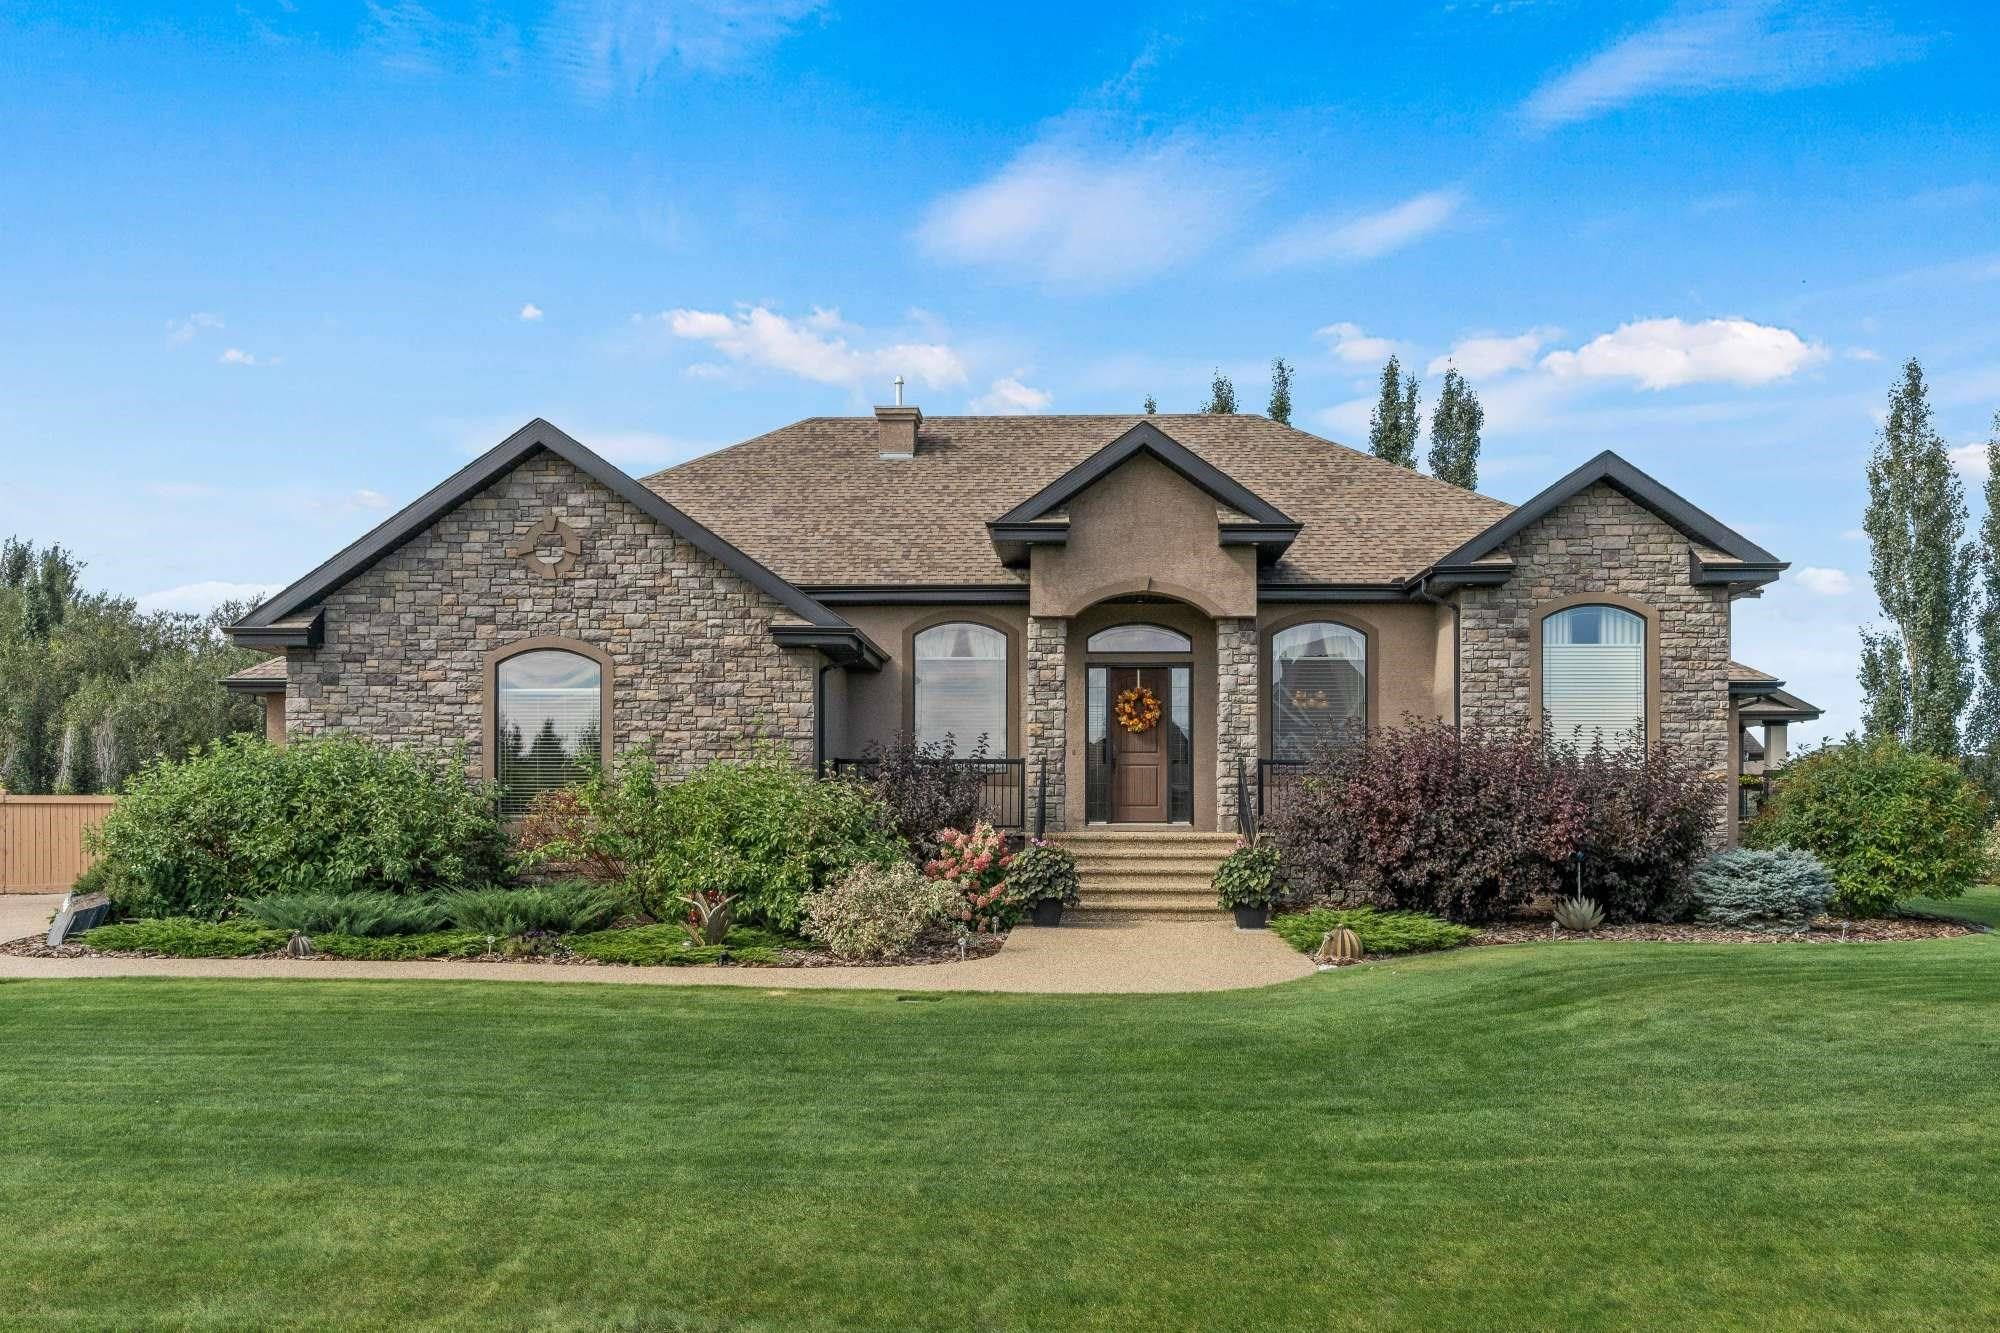 Main Photo: 507 MANOR POINTE Court: Rural Sturgeon County House for sale : MLS®# E4261716